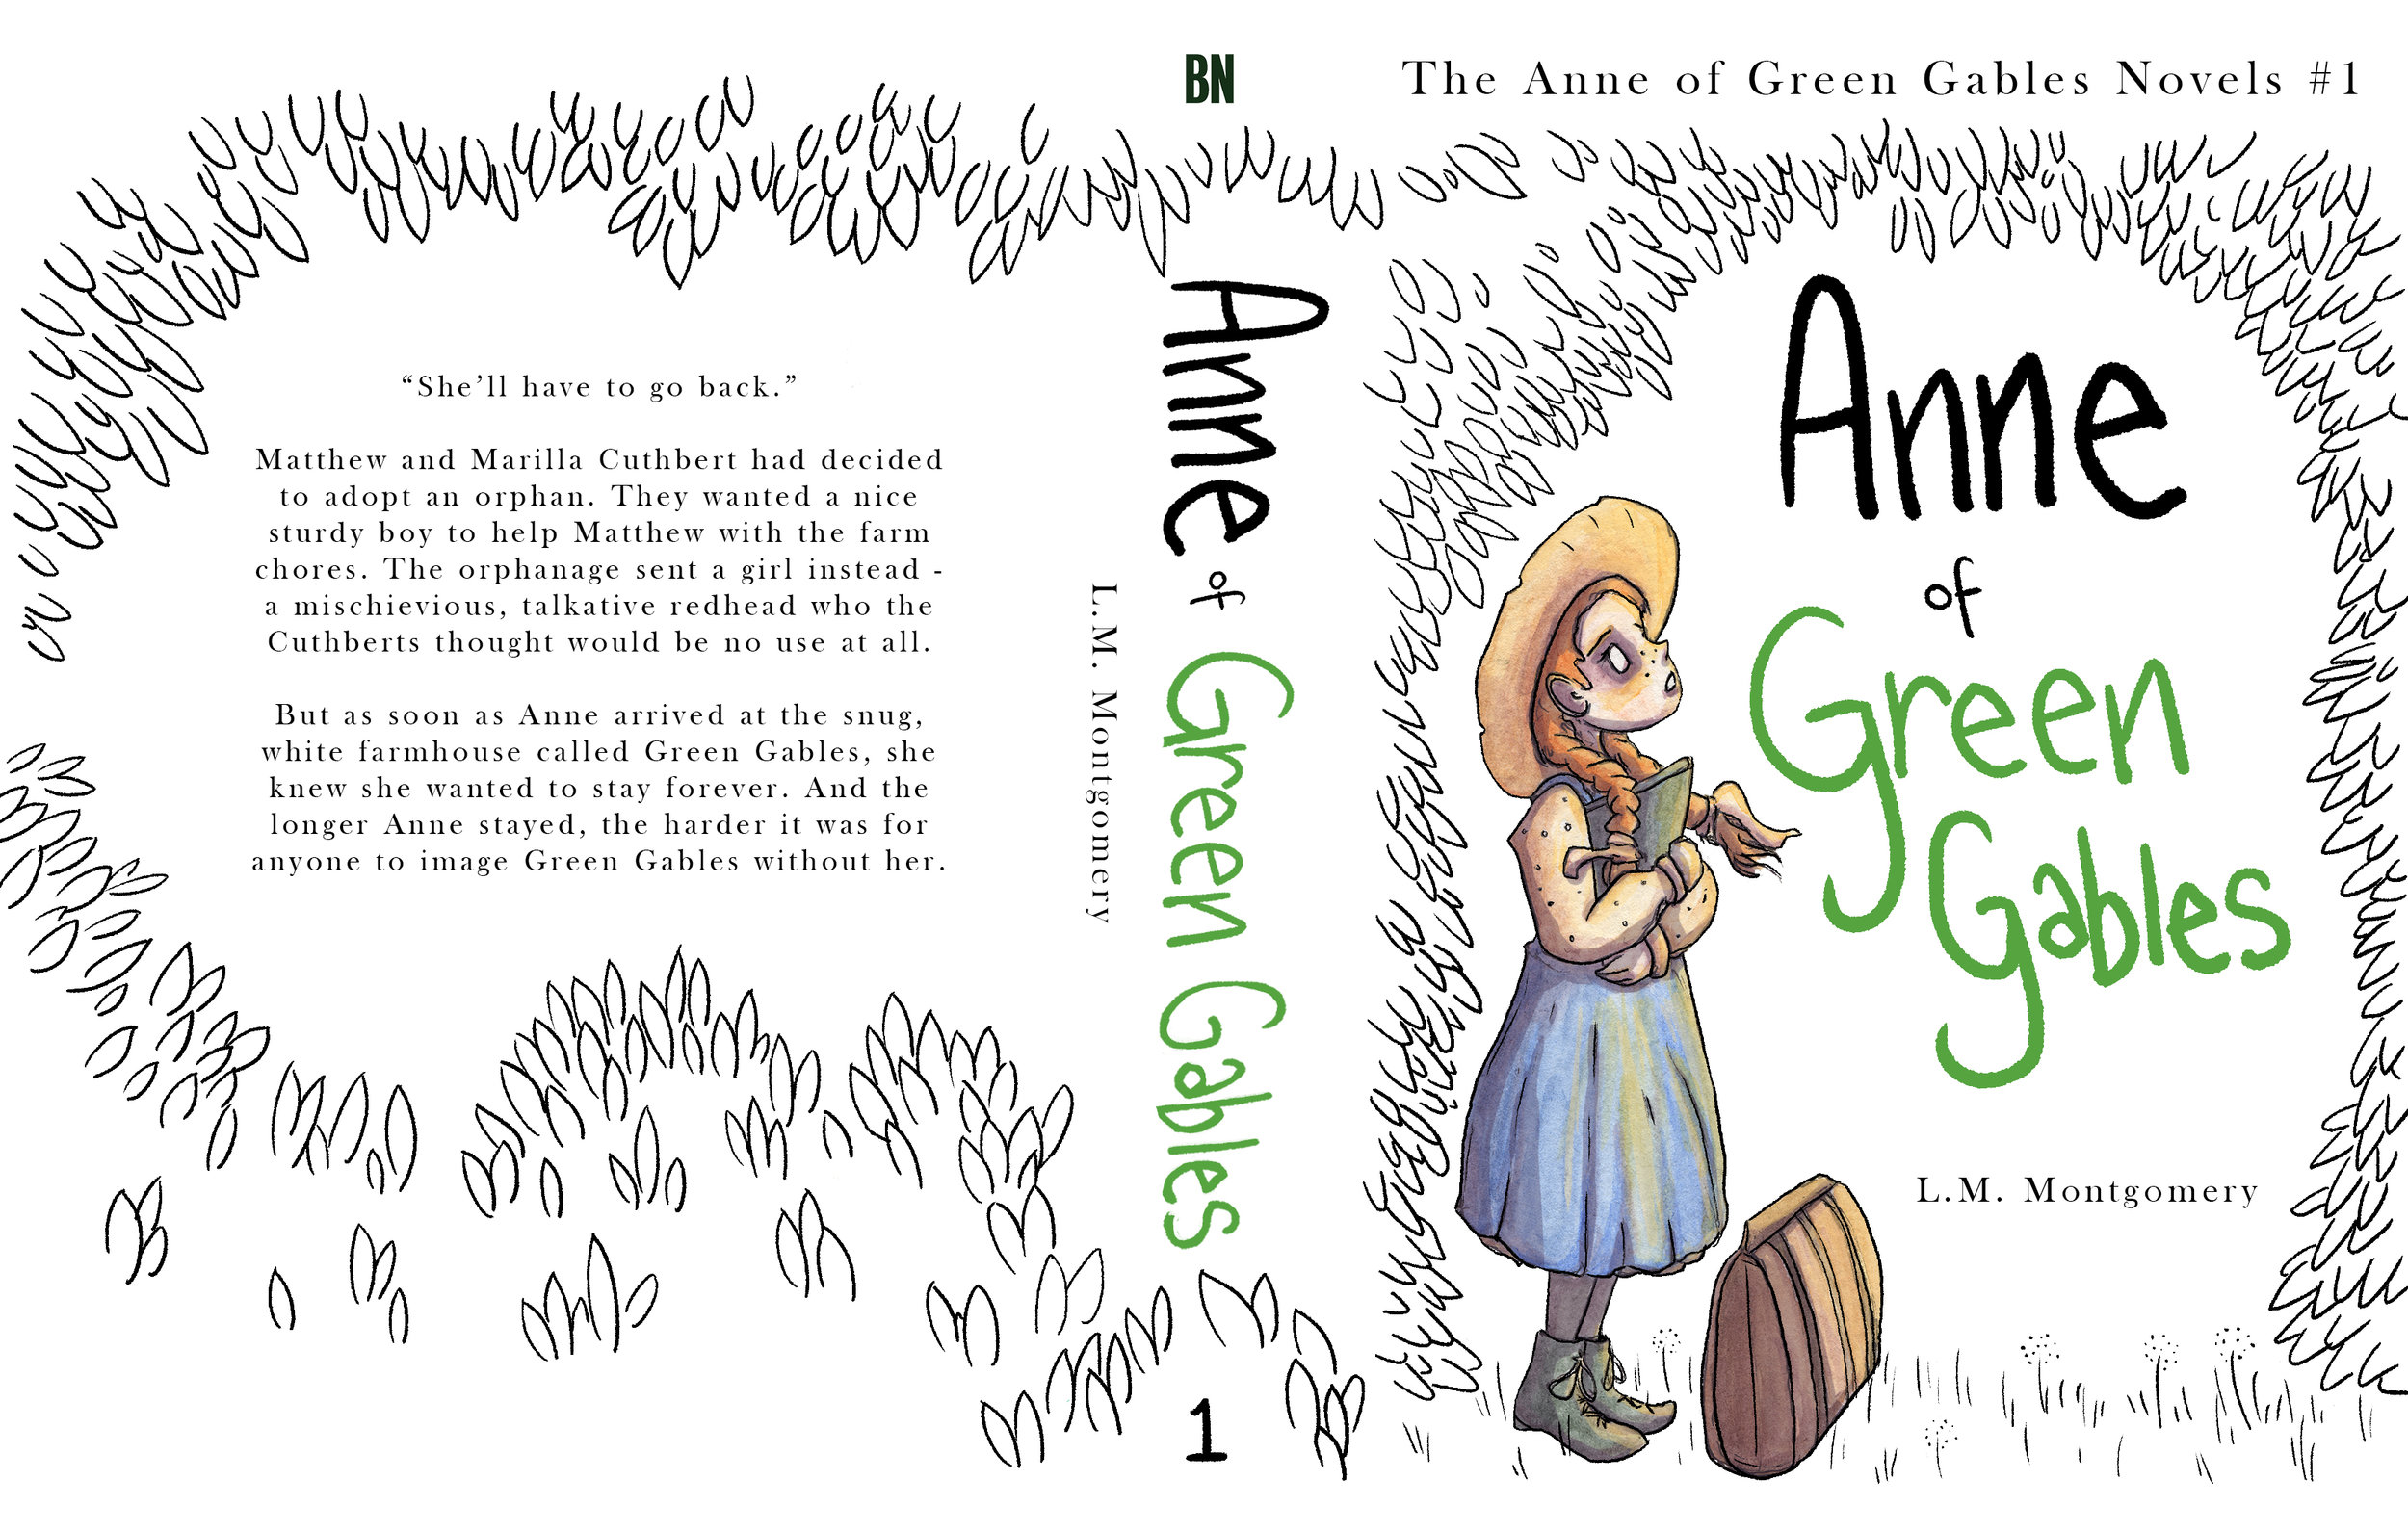 Anne of green gables (book cover)